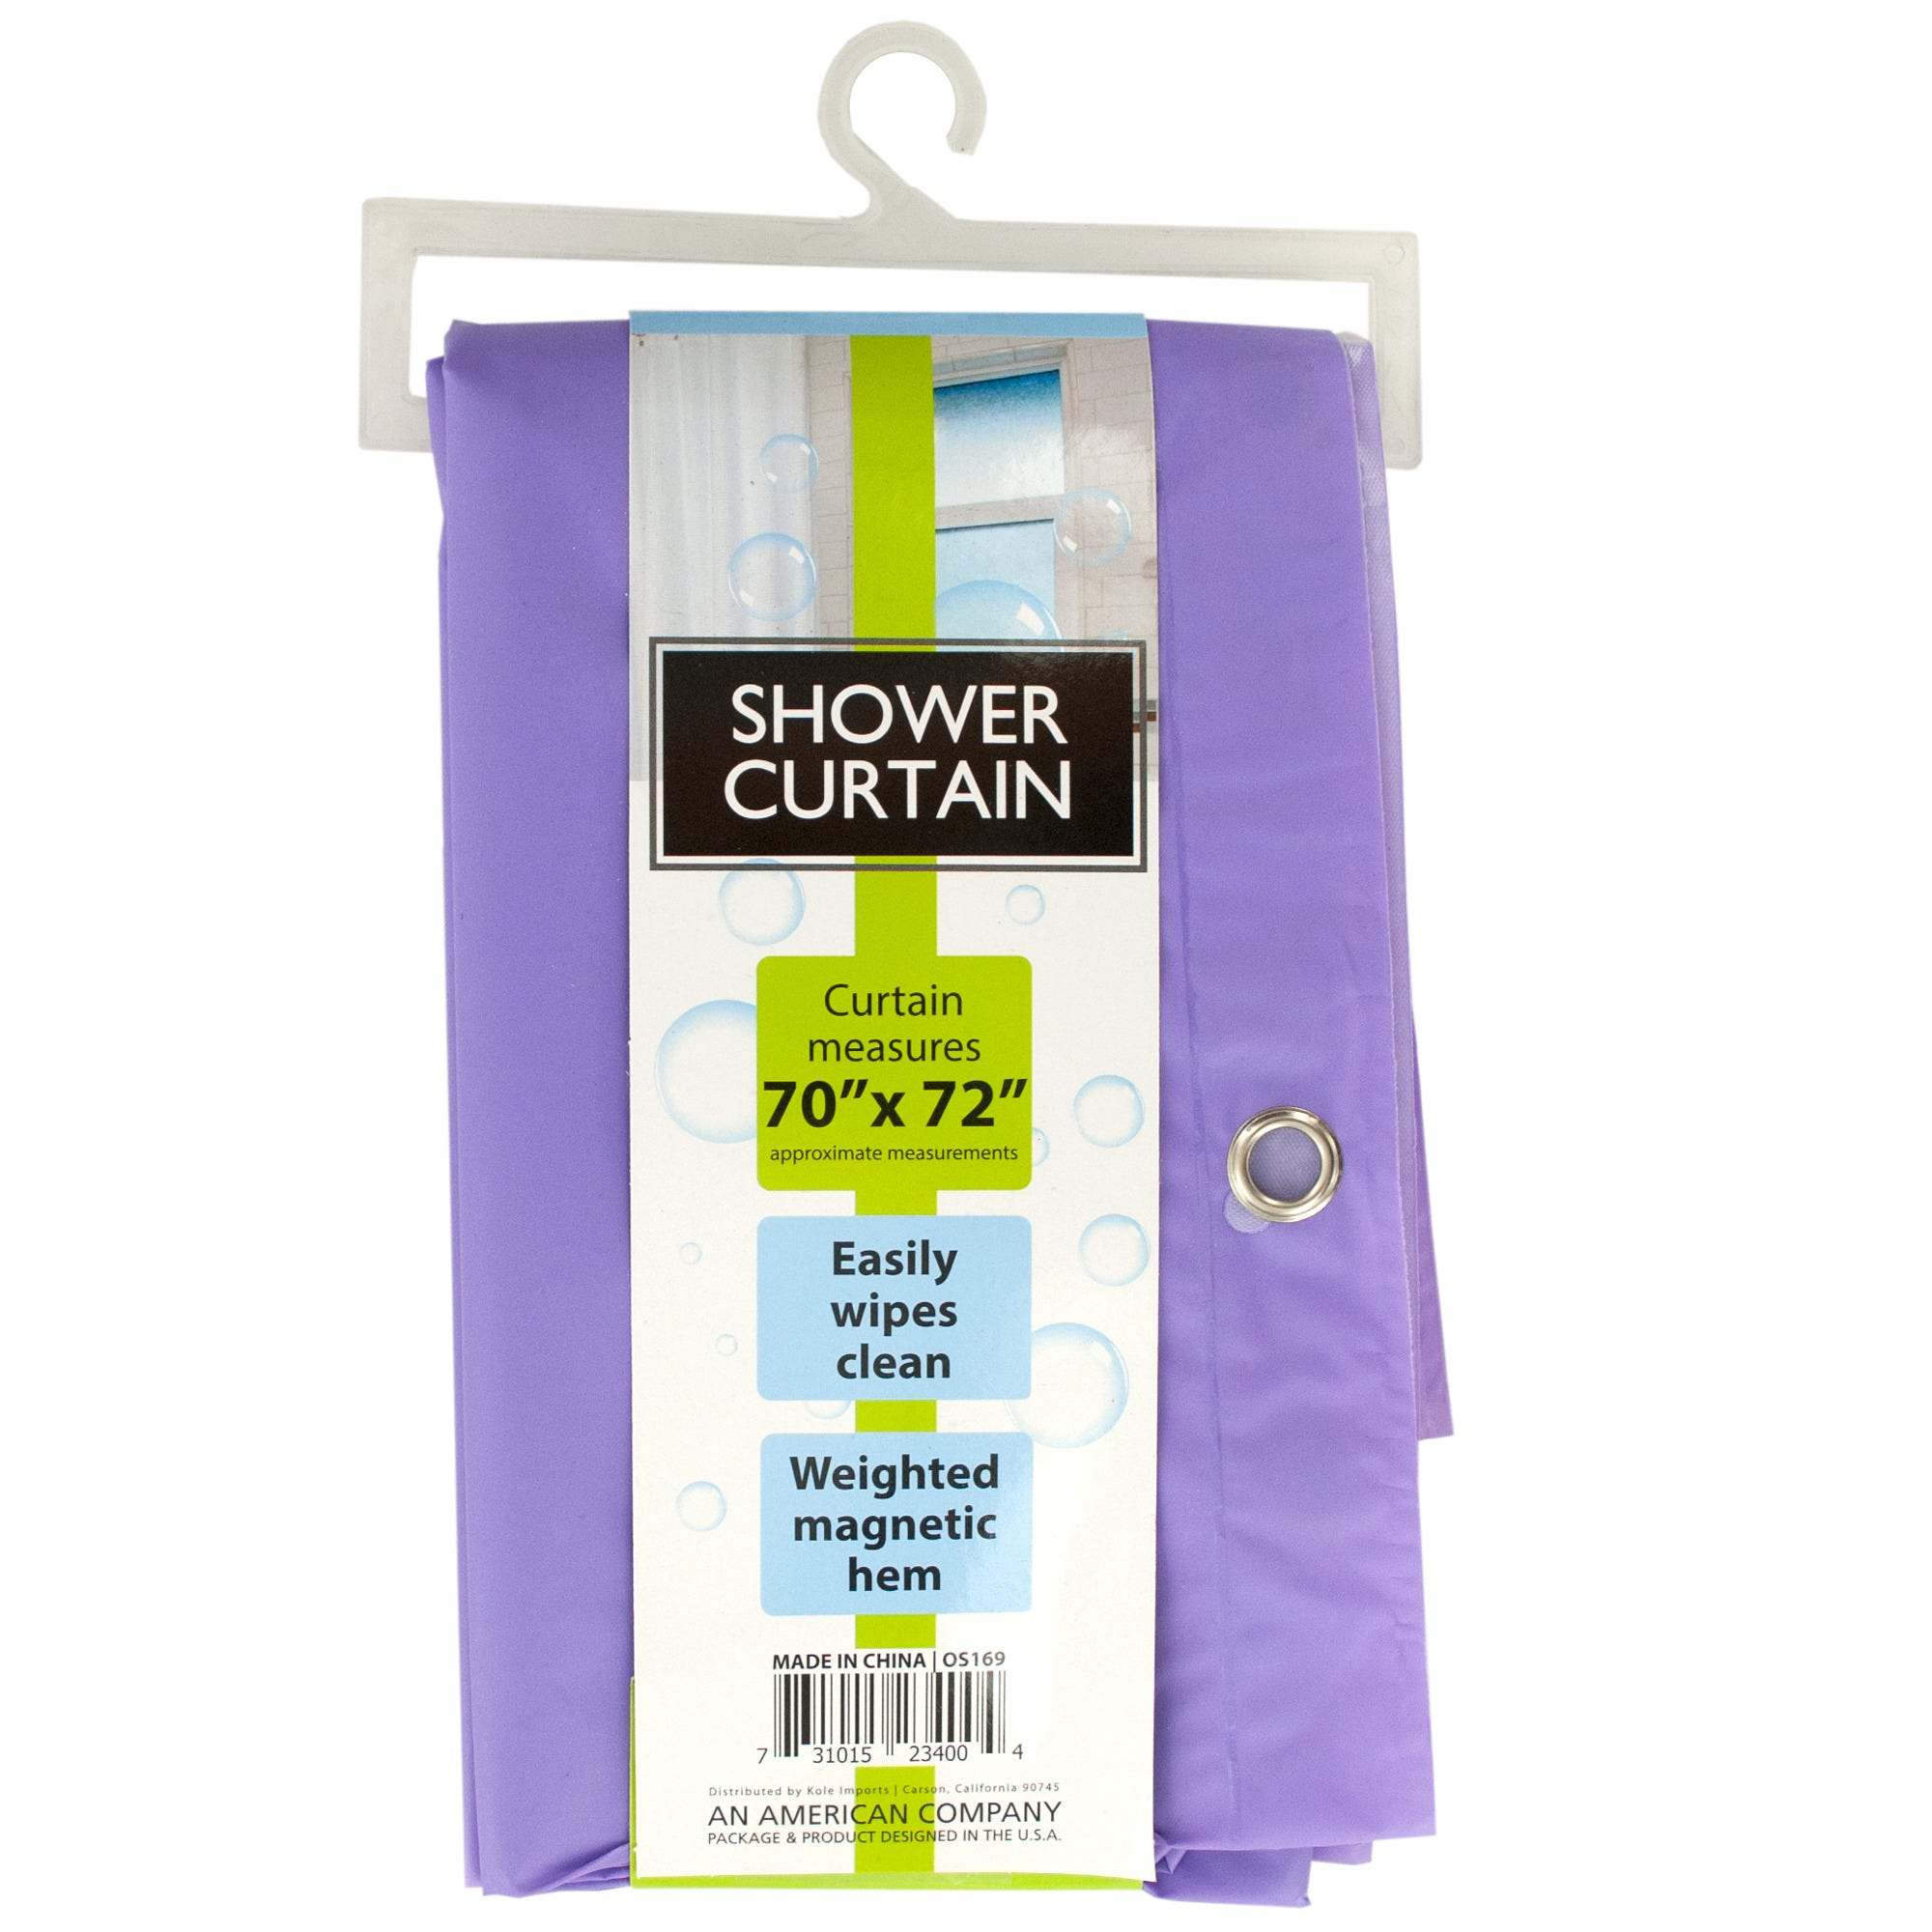 Shower CURTAIN with Weighted Magnetic Hem- Qty 8